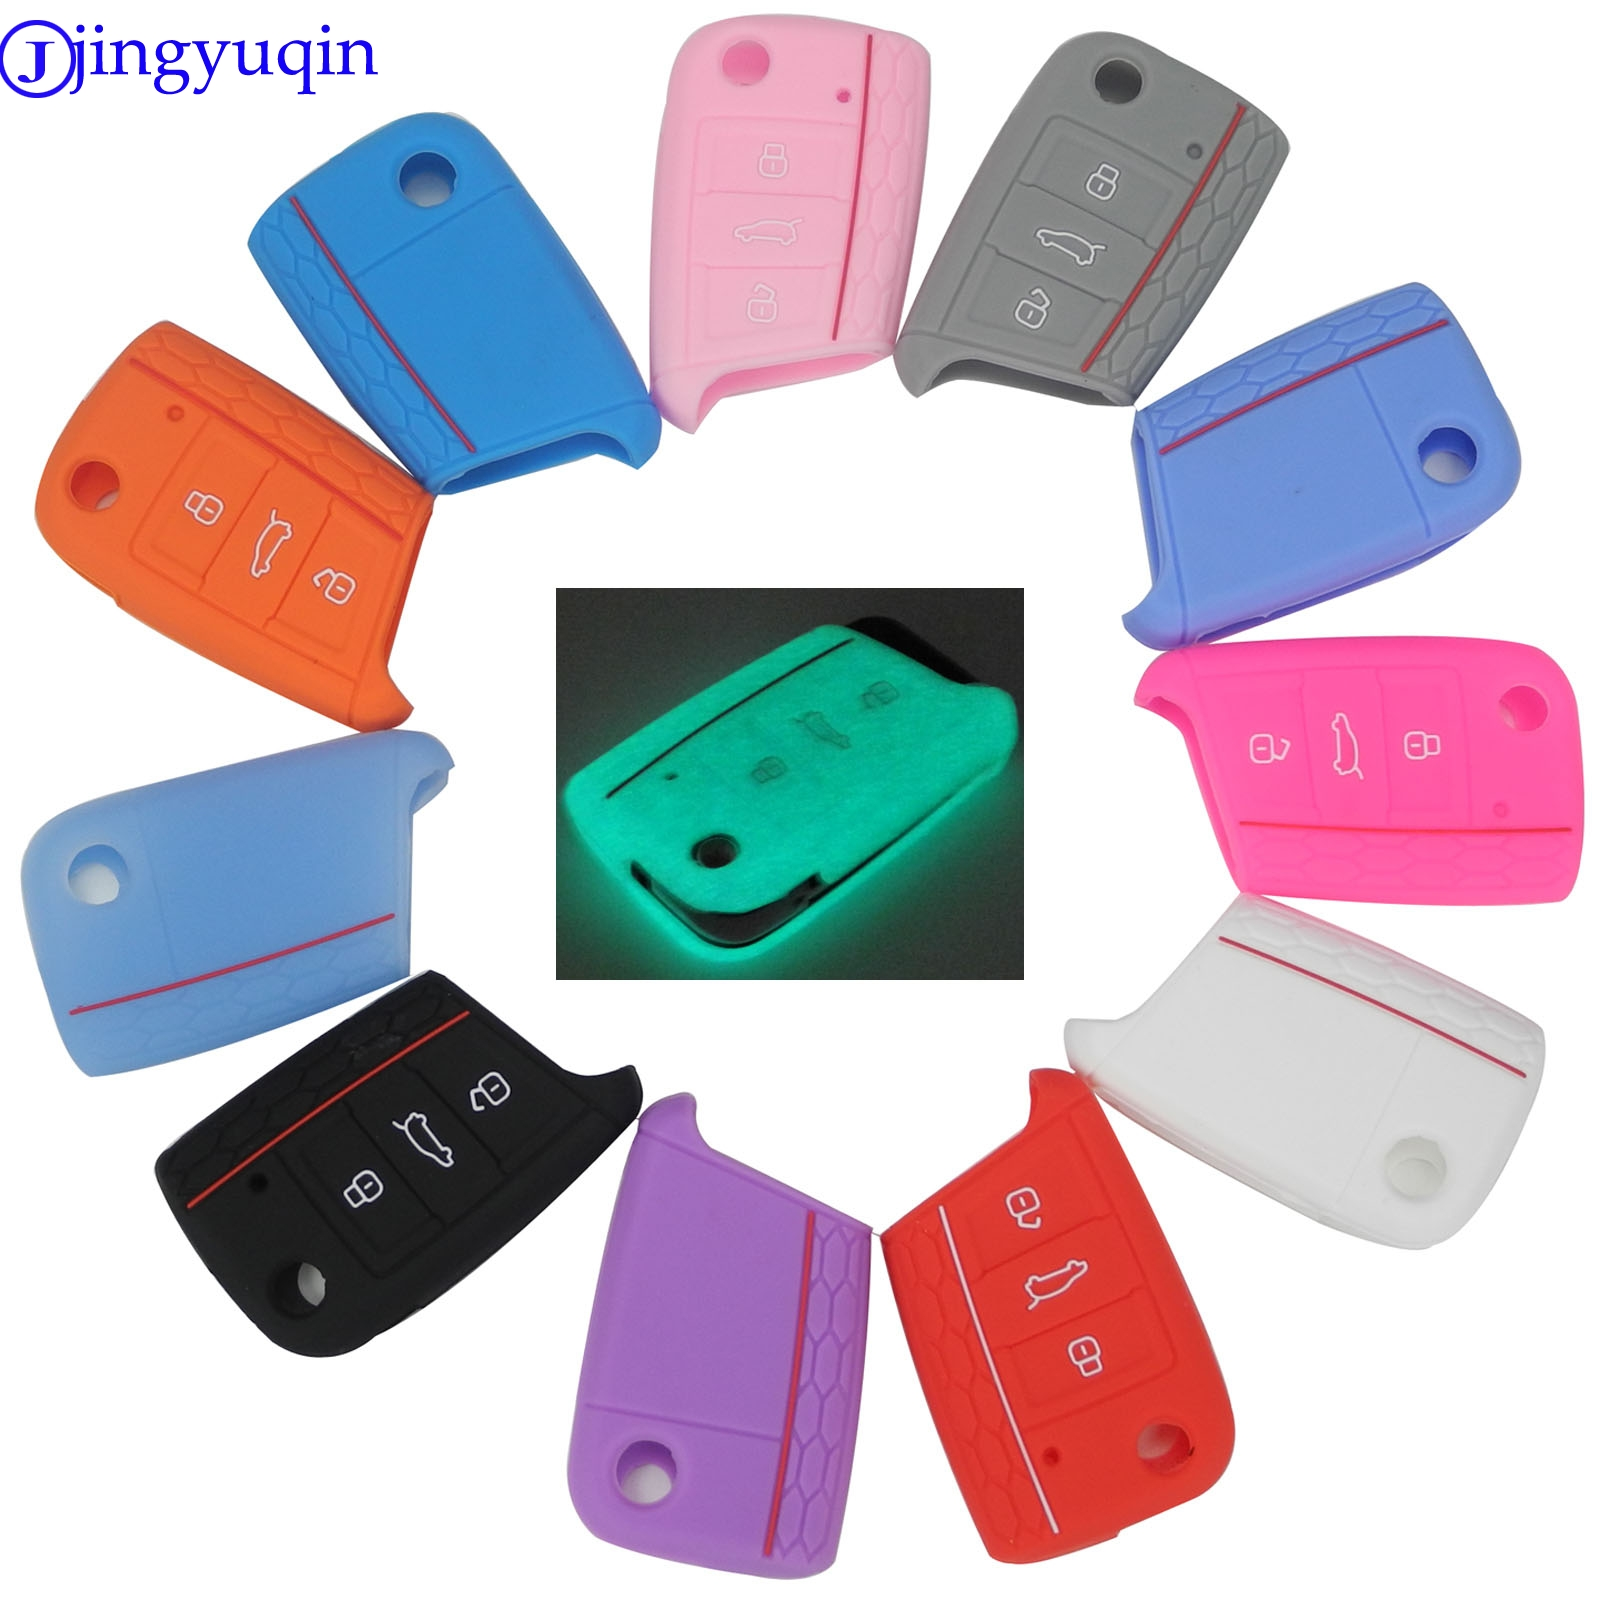 Car Accessories Key Case Key Bag Key Cover For Volkswagen VW Golf 7 mk7 Skoda Octavia A7 Silicone Key Portect Case1pc per set